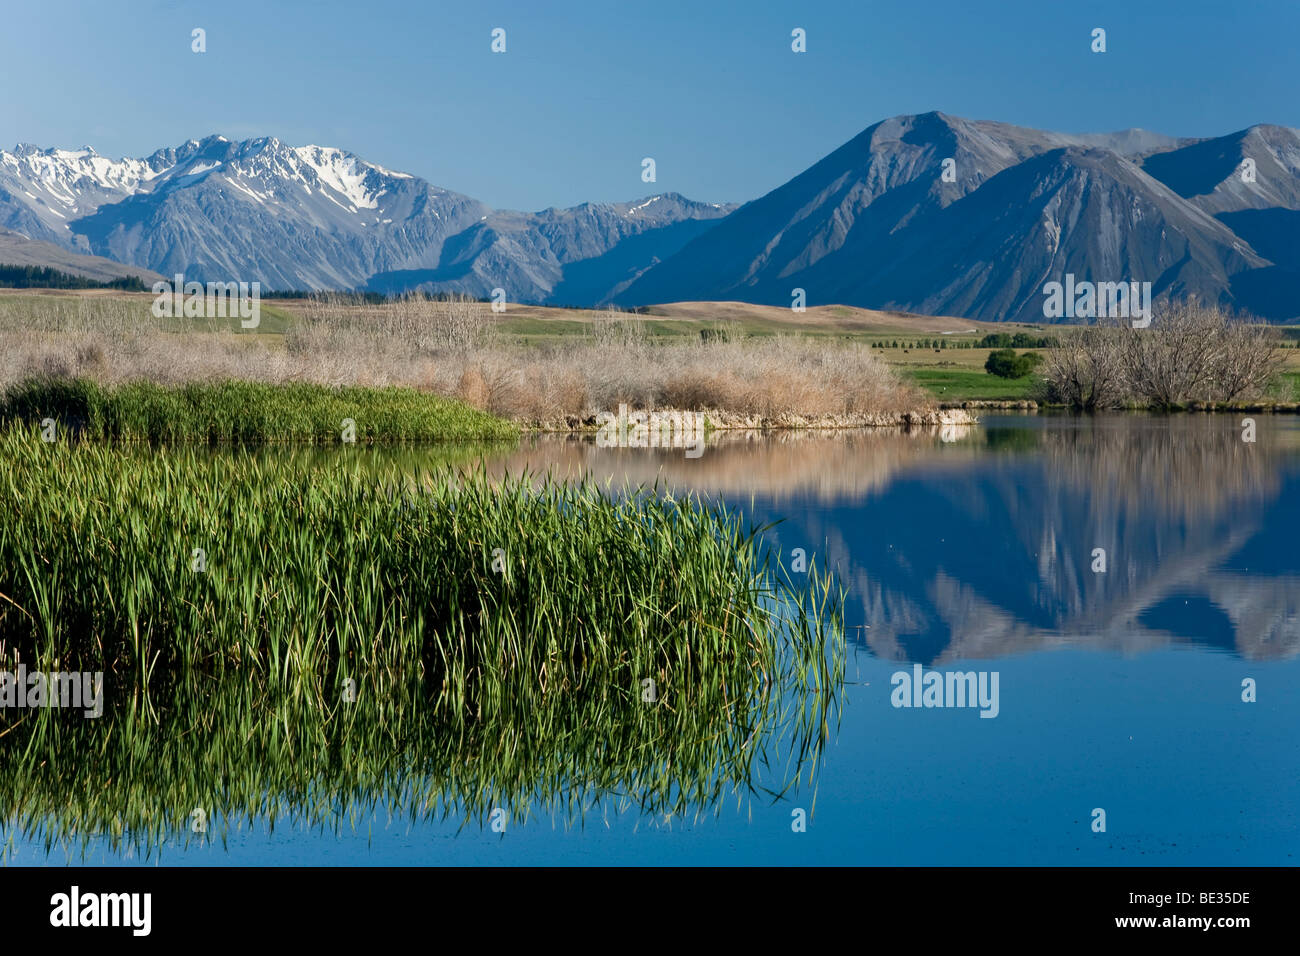 Water reflections on the banks of Lake Maoris in the morning light, South Island, New Zealand - Stock Image